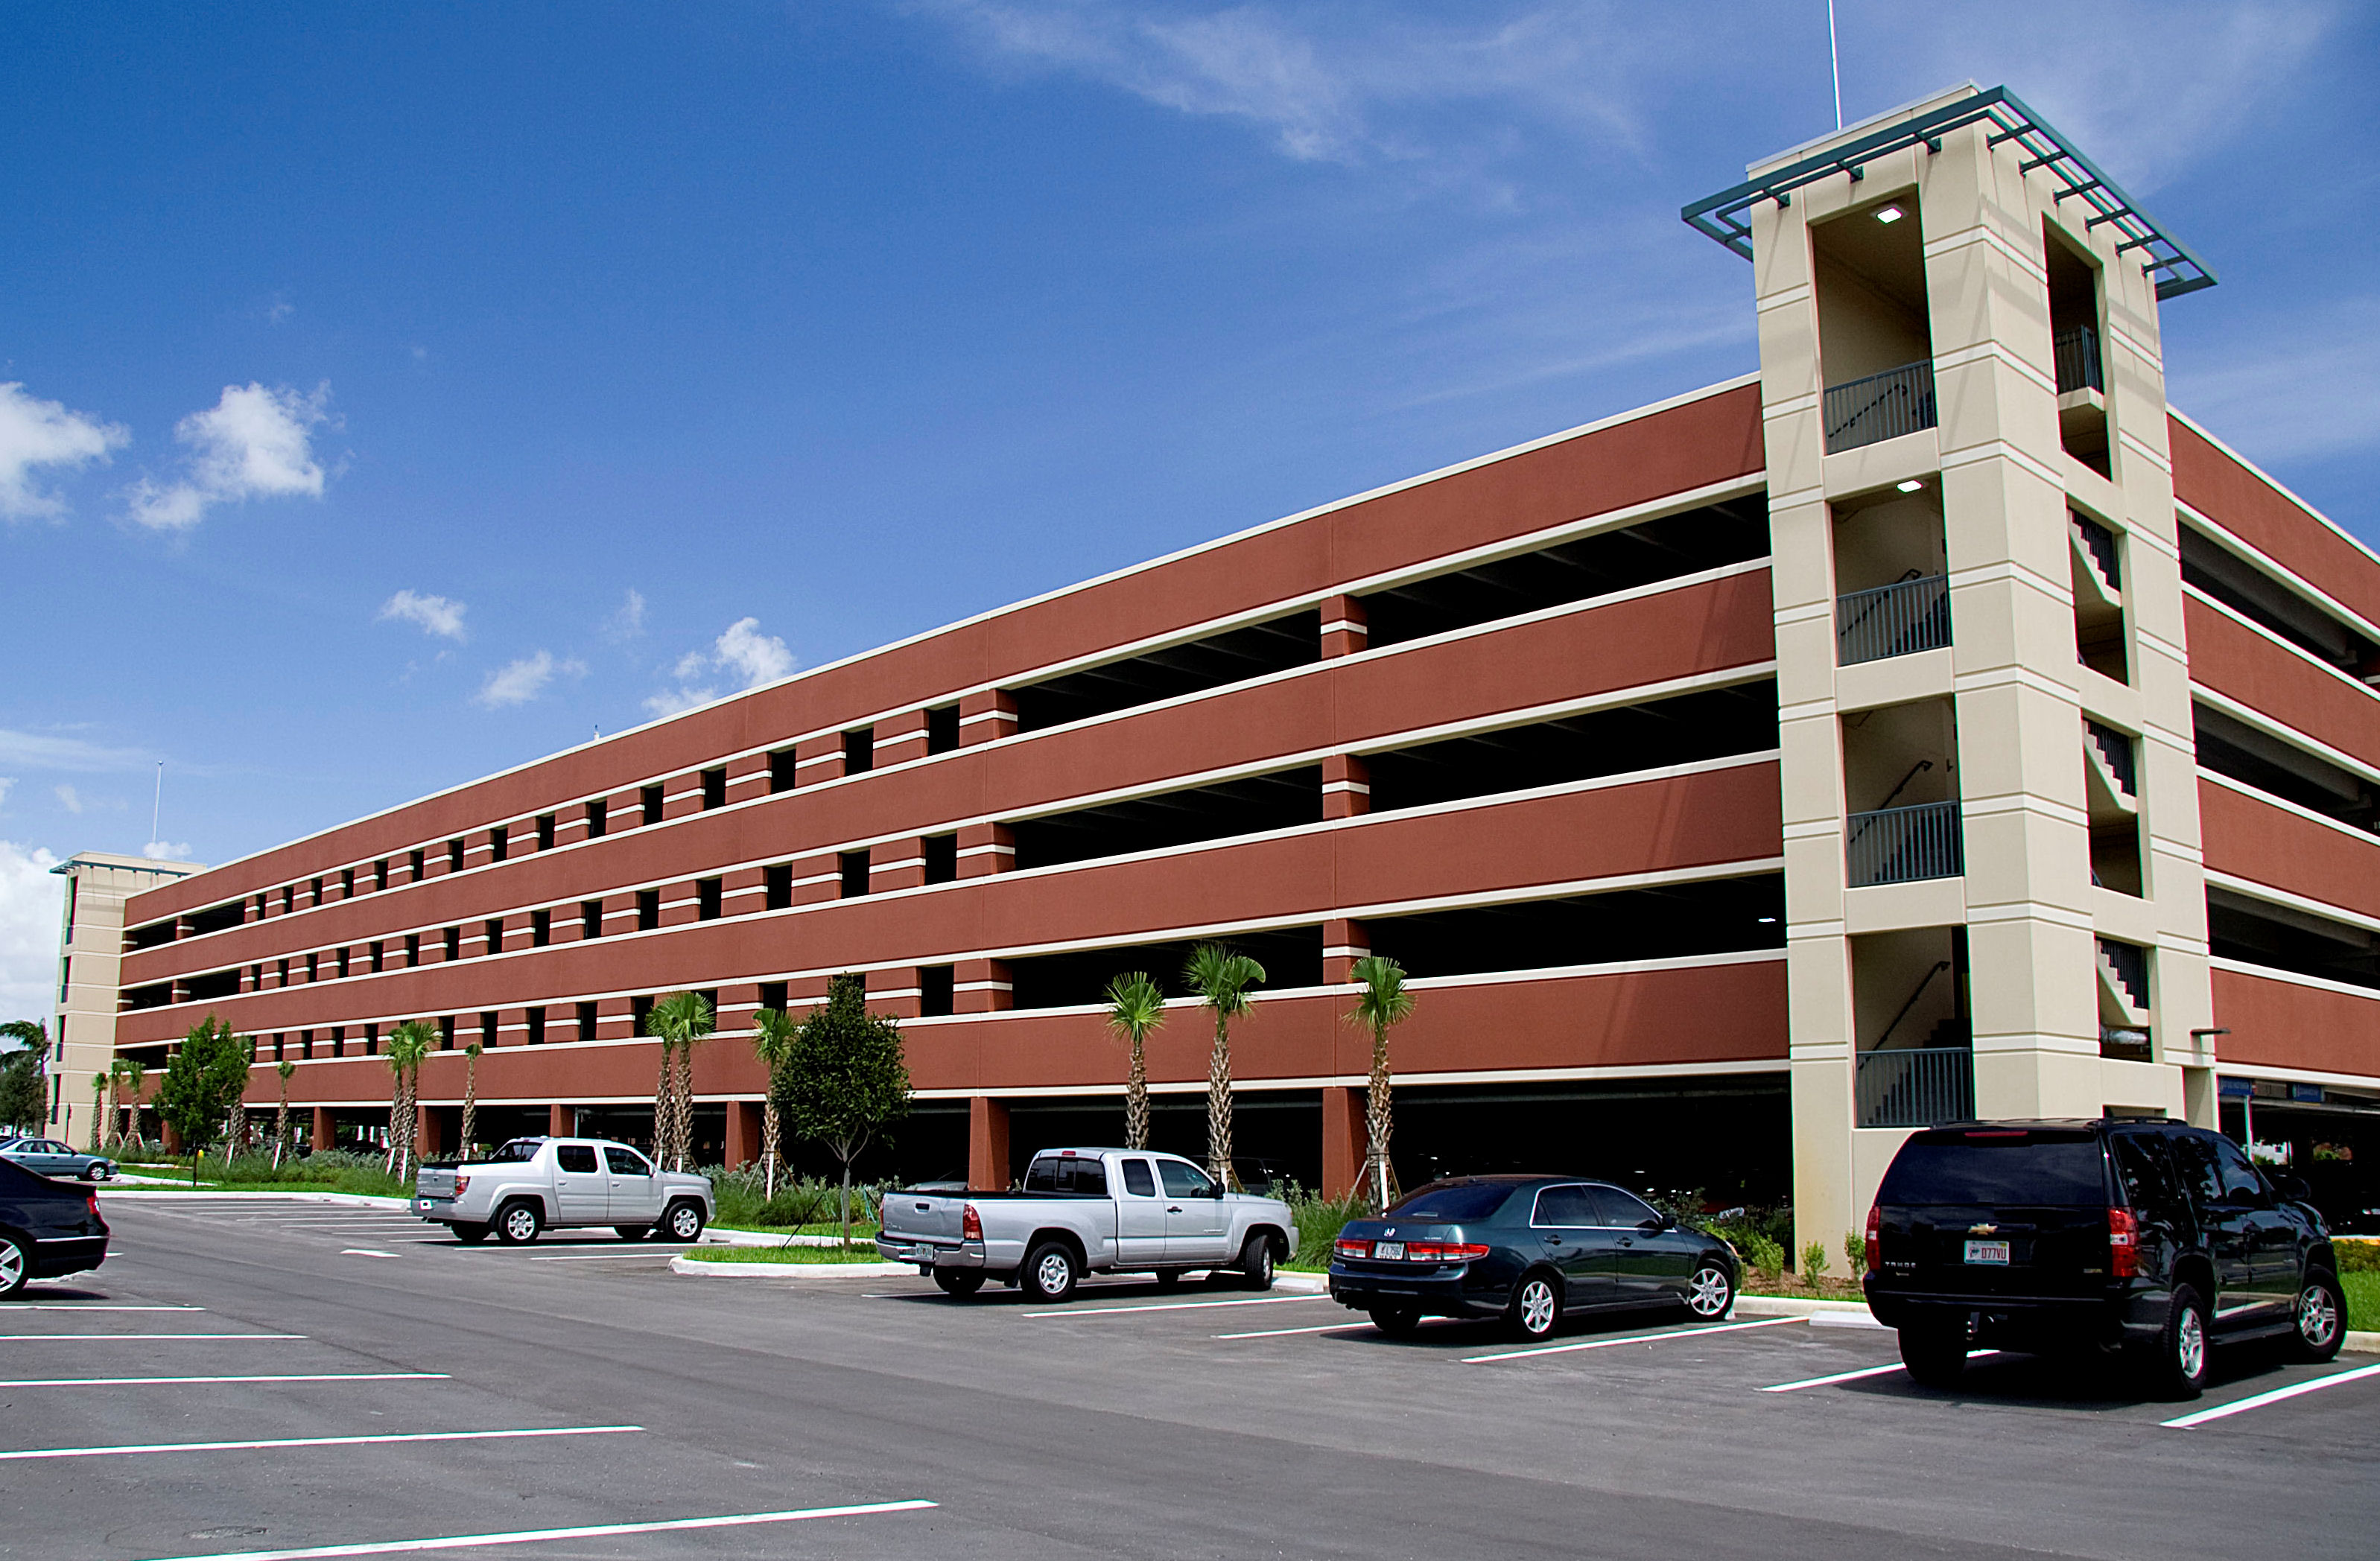 Miami_Parking structures_BC and FAU 2